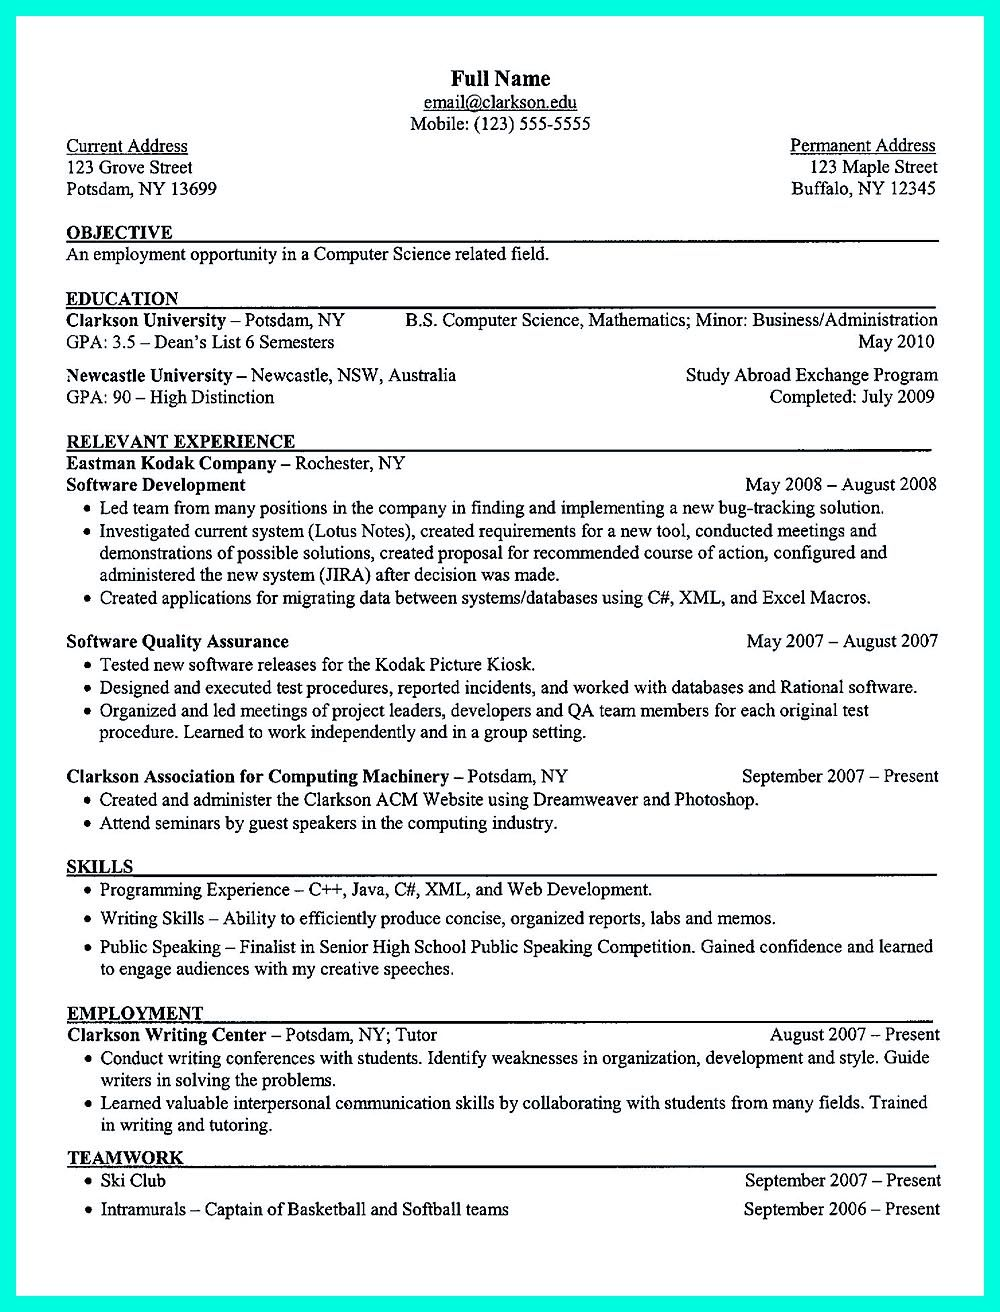 What you will include in the computer science resume depends on ...